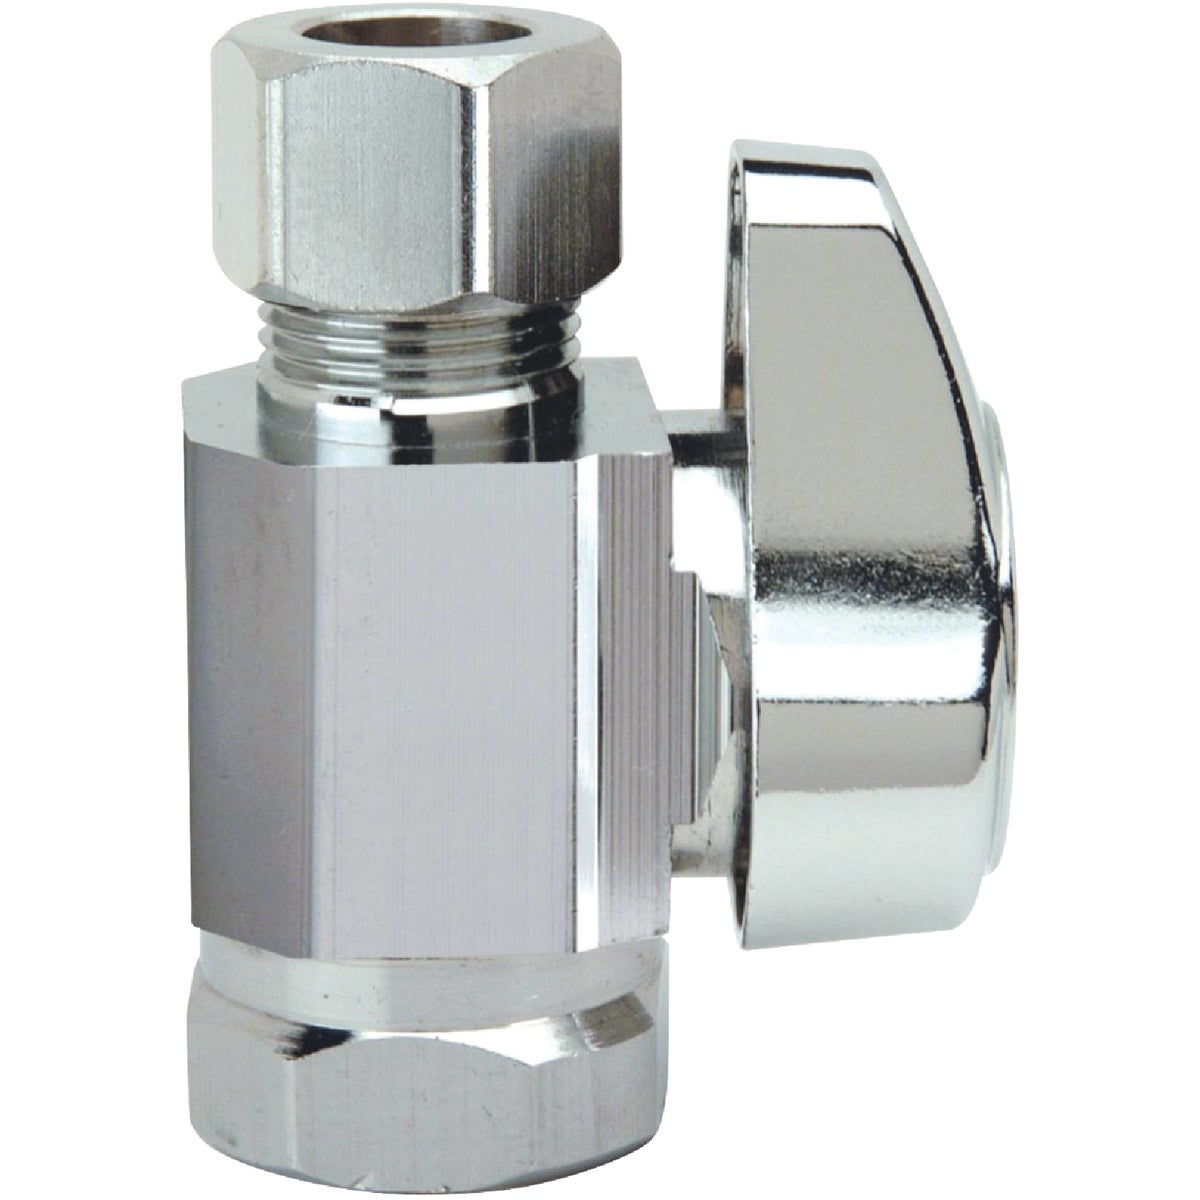 "3/8"" STRAIGHT VALVE - G2R10X C1 by Brass Craft"